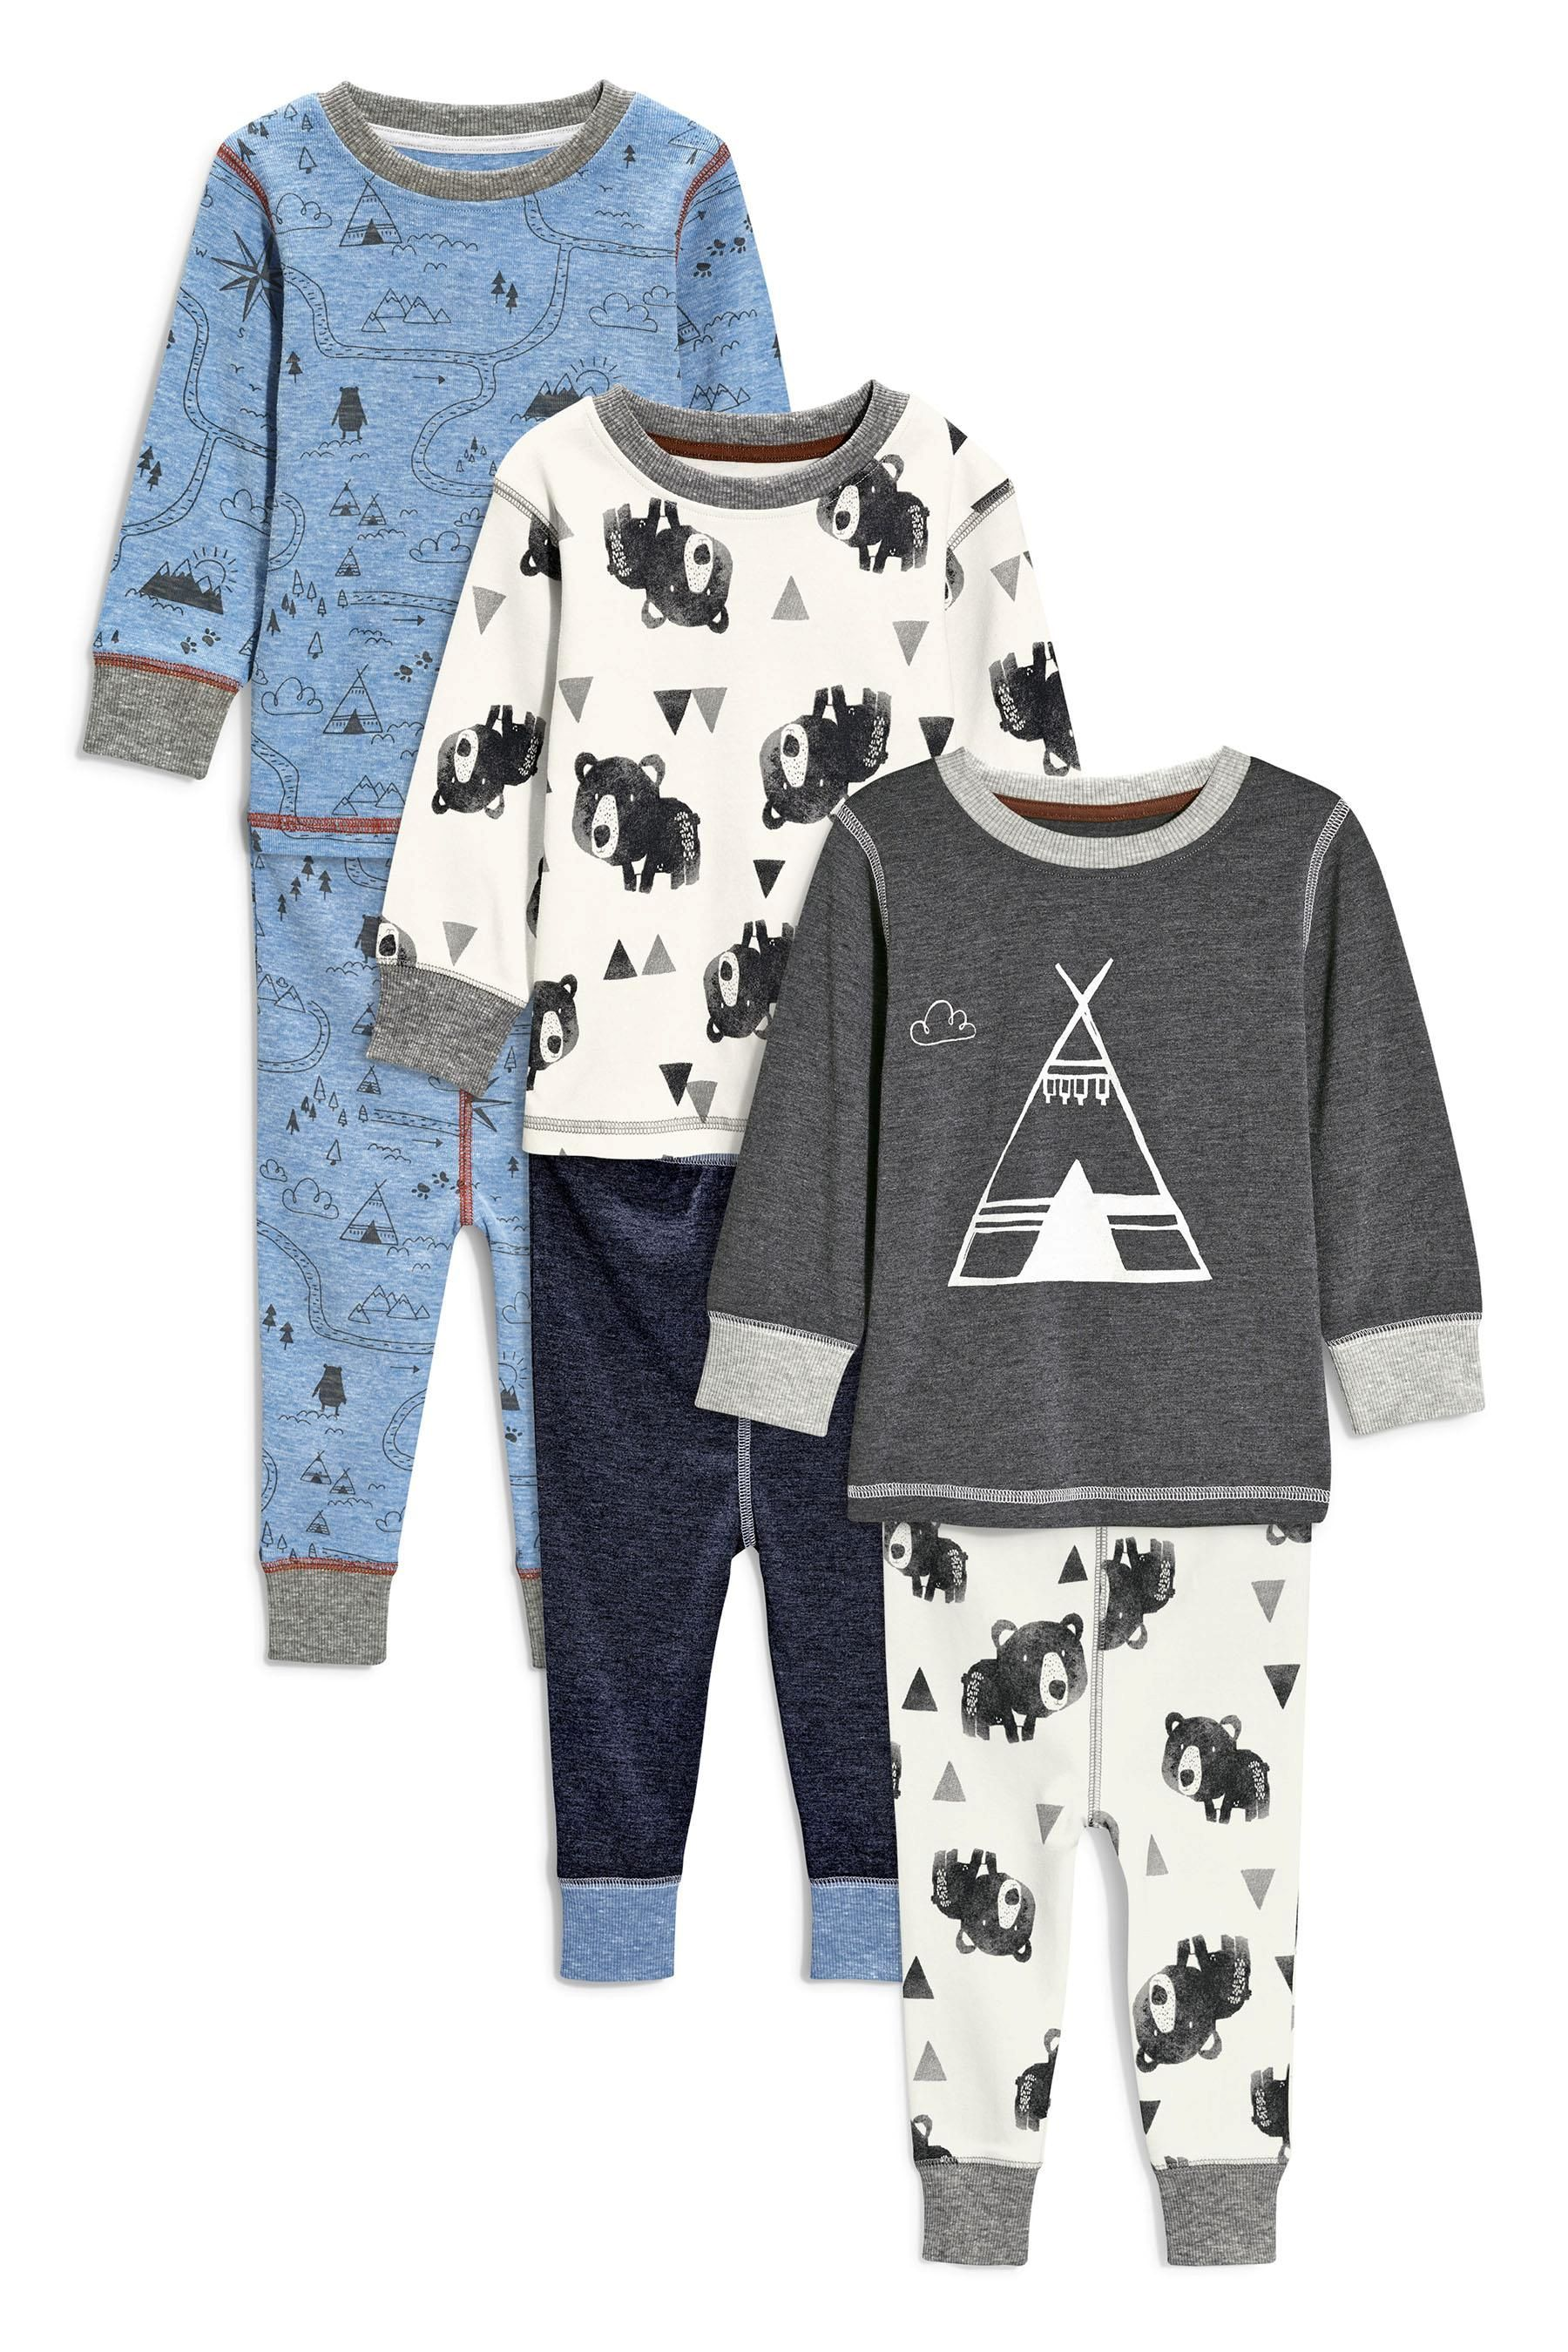 e00e3a75a Buy Three Pack Teepee Bear Snuggle Fit Pyjamas (9mths-8yrs) from the ...